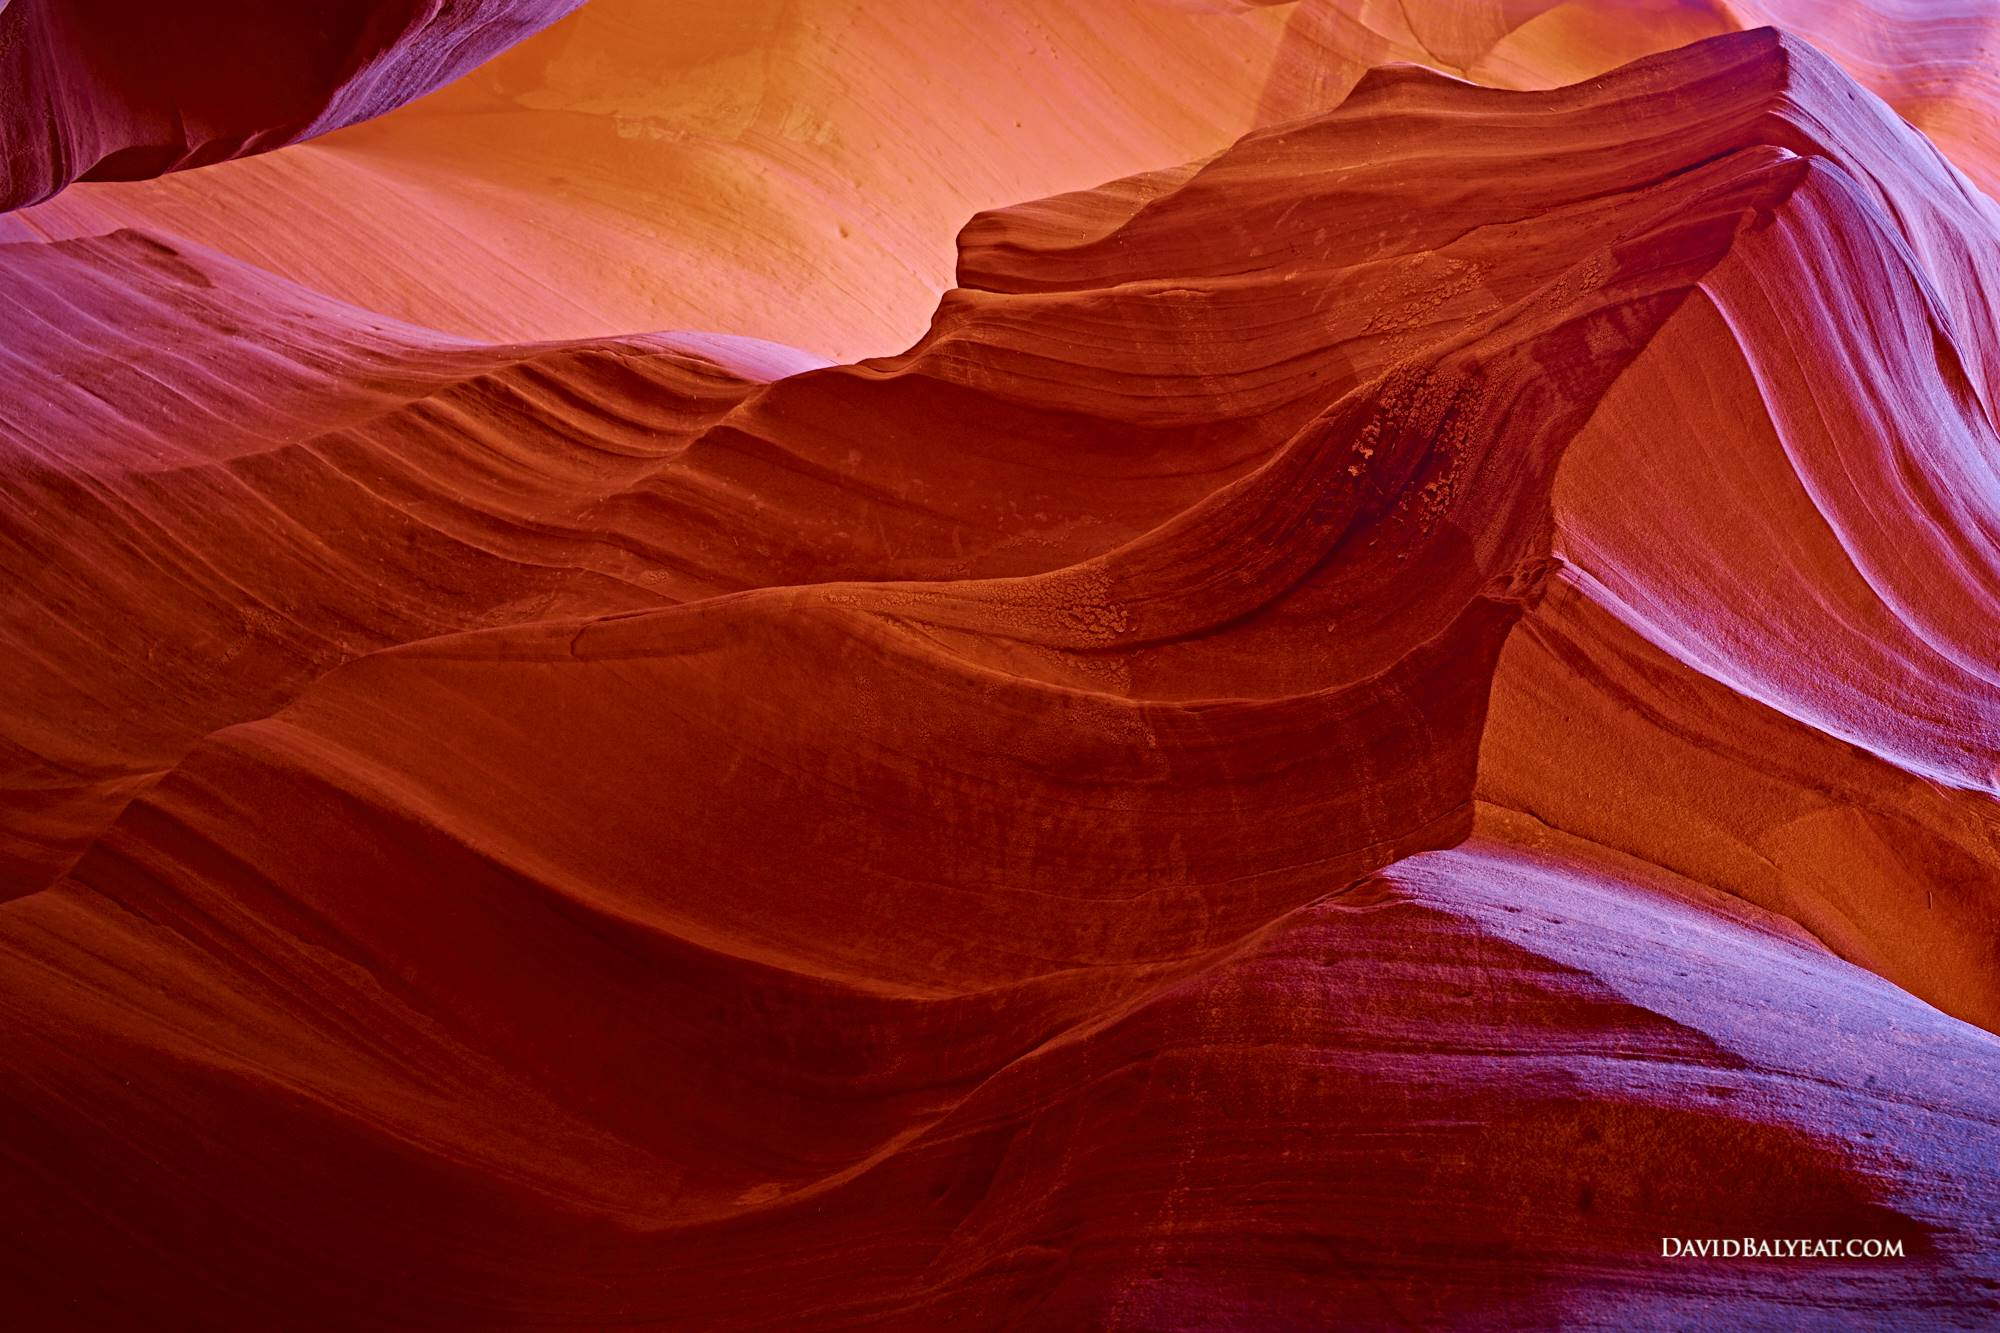 Antelope Canyon Arizona abstract rock formations wolf high defintion HD photography